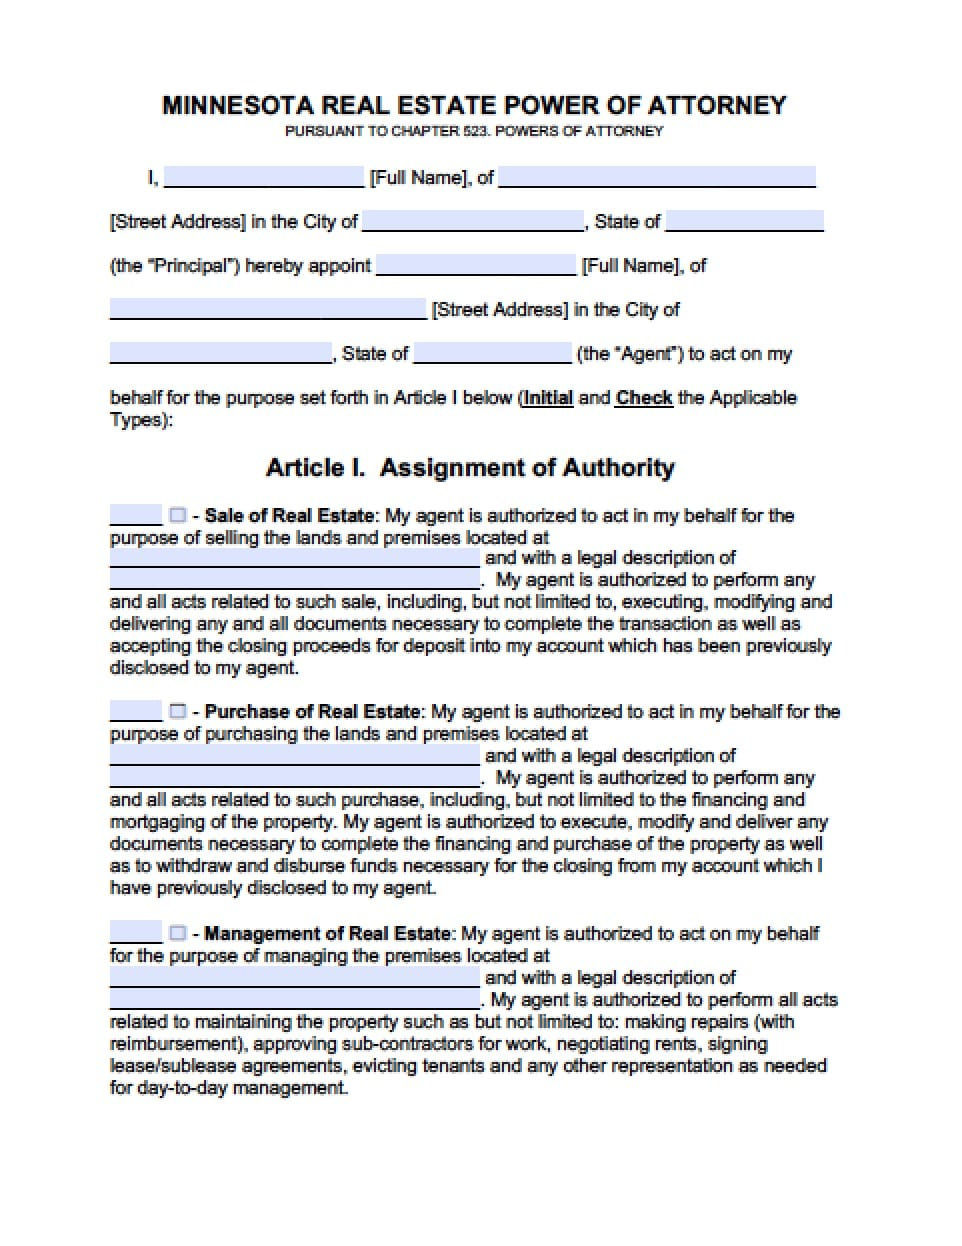 power of attorney form mn  Minnesota Real Estate ONLY Power of Attorney Form - Power of ...